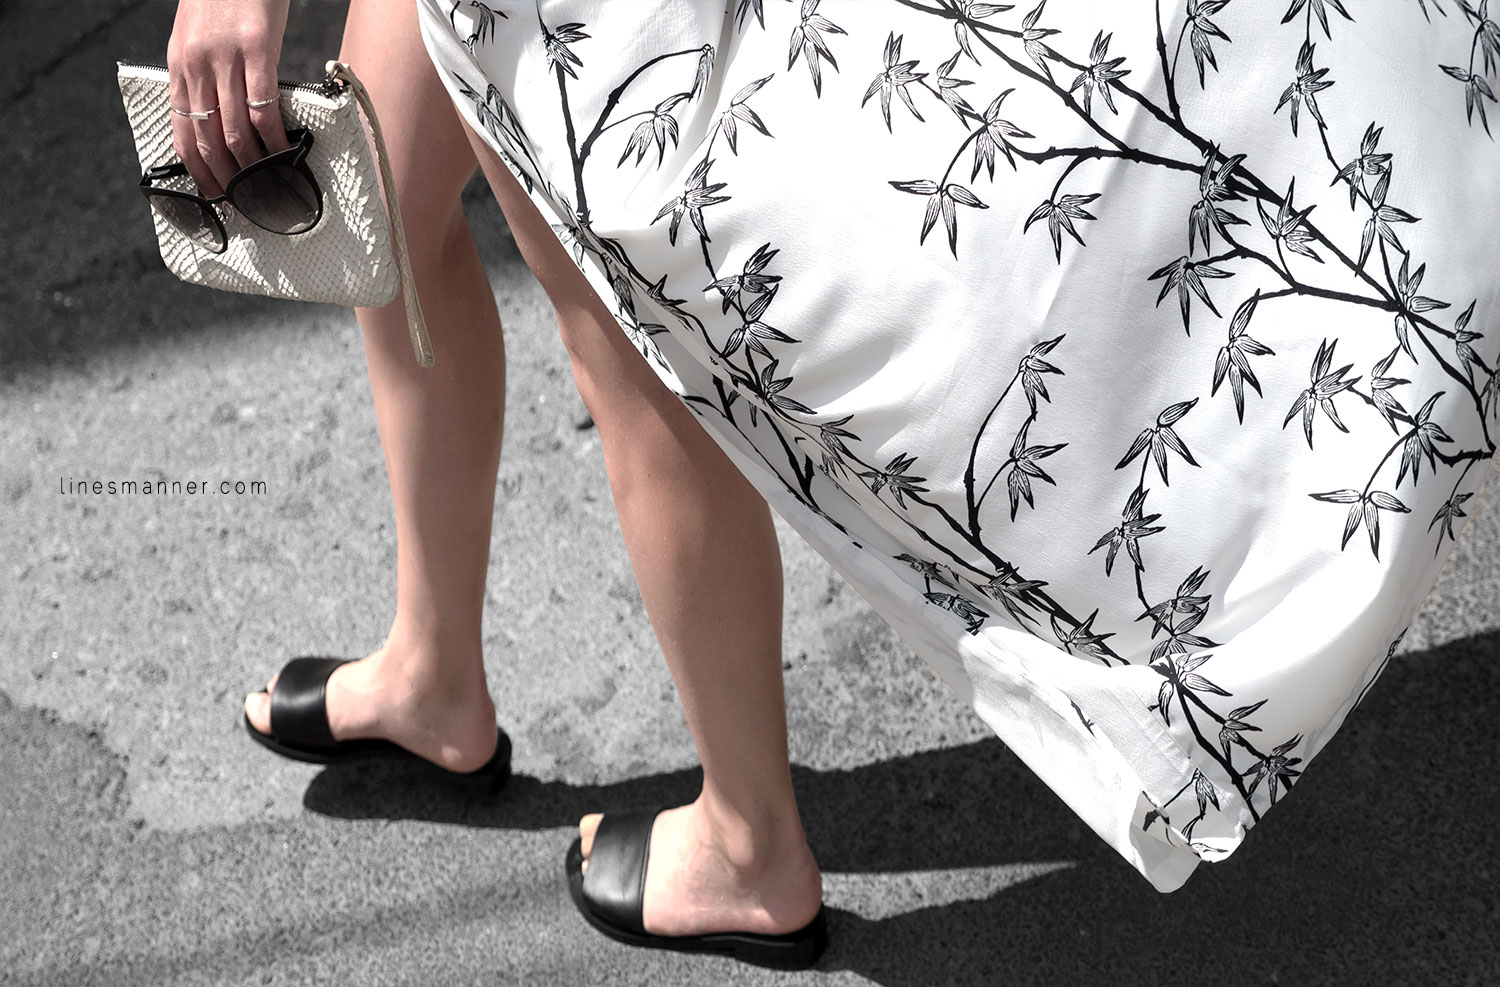 Lines-Manner-Minimal-Simplicity-Essentials-Bon_Label-Neon_Rose_Print-Bamboo-Slit_Dress-Wrap_Dress-Maxi_Dress-Fesh-Black_and_White-Casual-Elegant-Bright-Monochrome-6